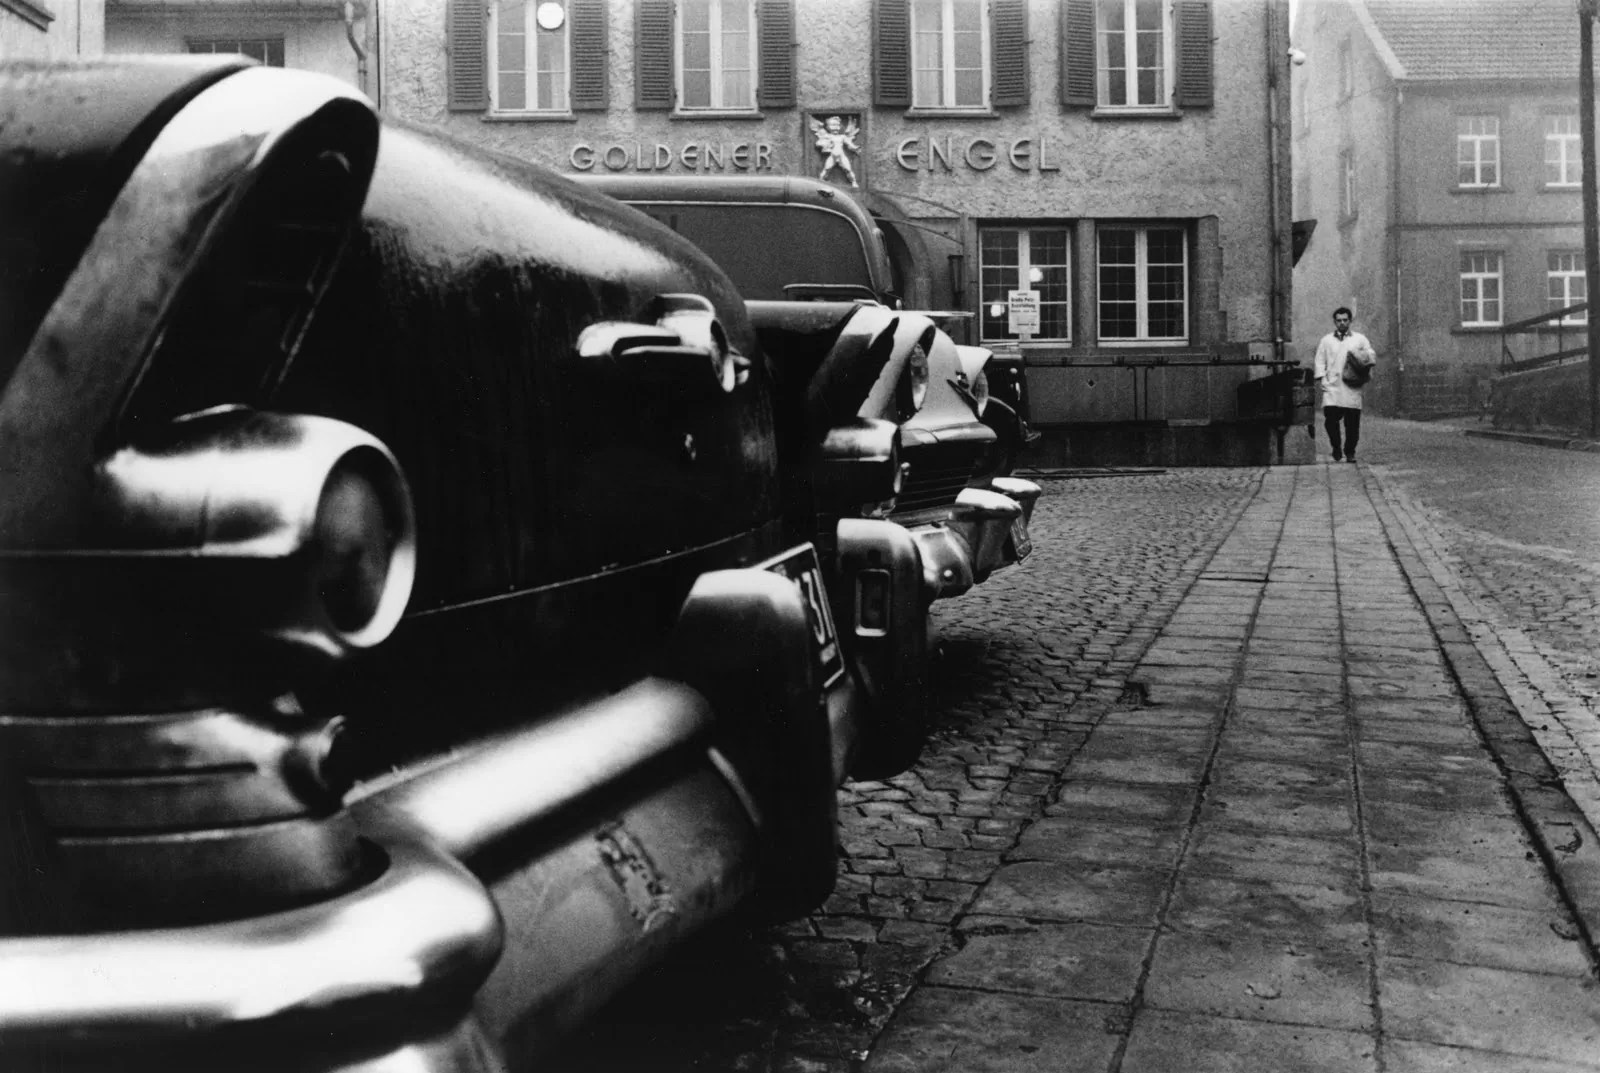 La citt di Baumholder Germania 1959 - Addio René Burri (1933-2014) - fotostreet.it